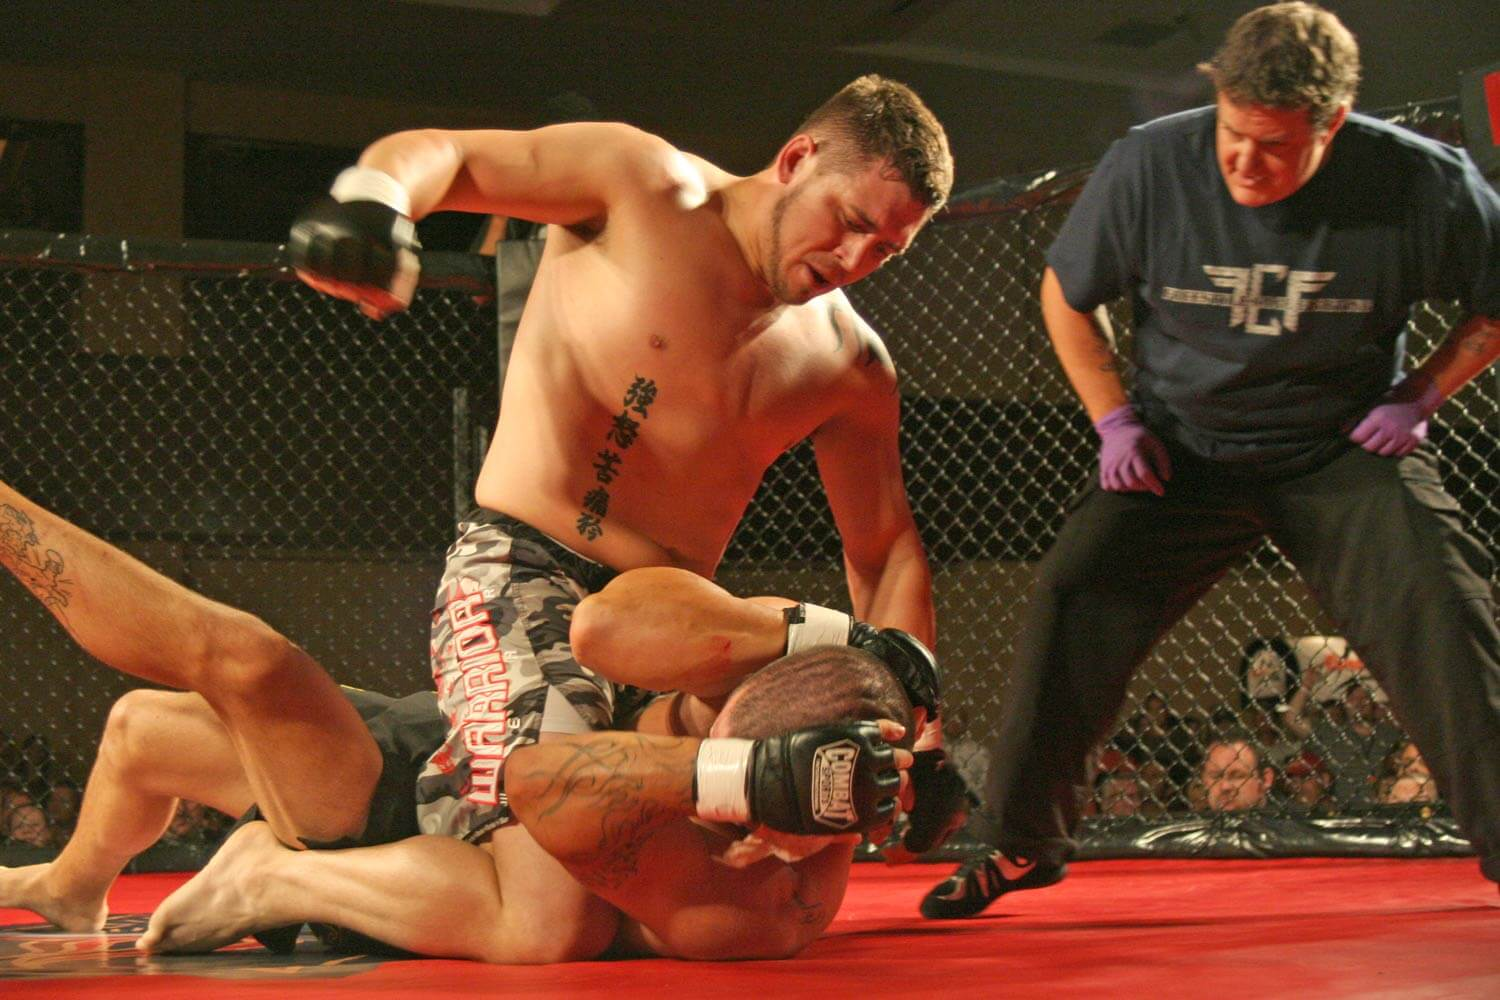 Freestyle Cage Fighting 27 Action Image